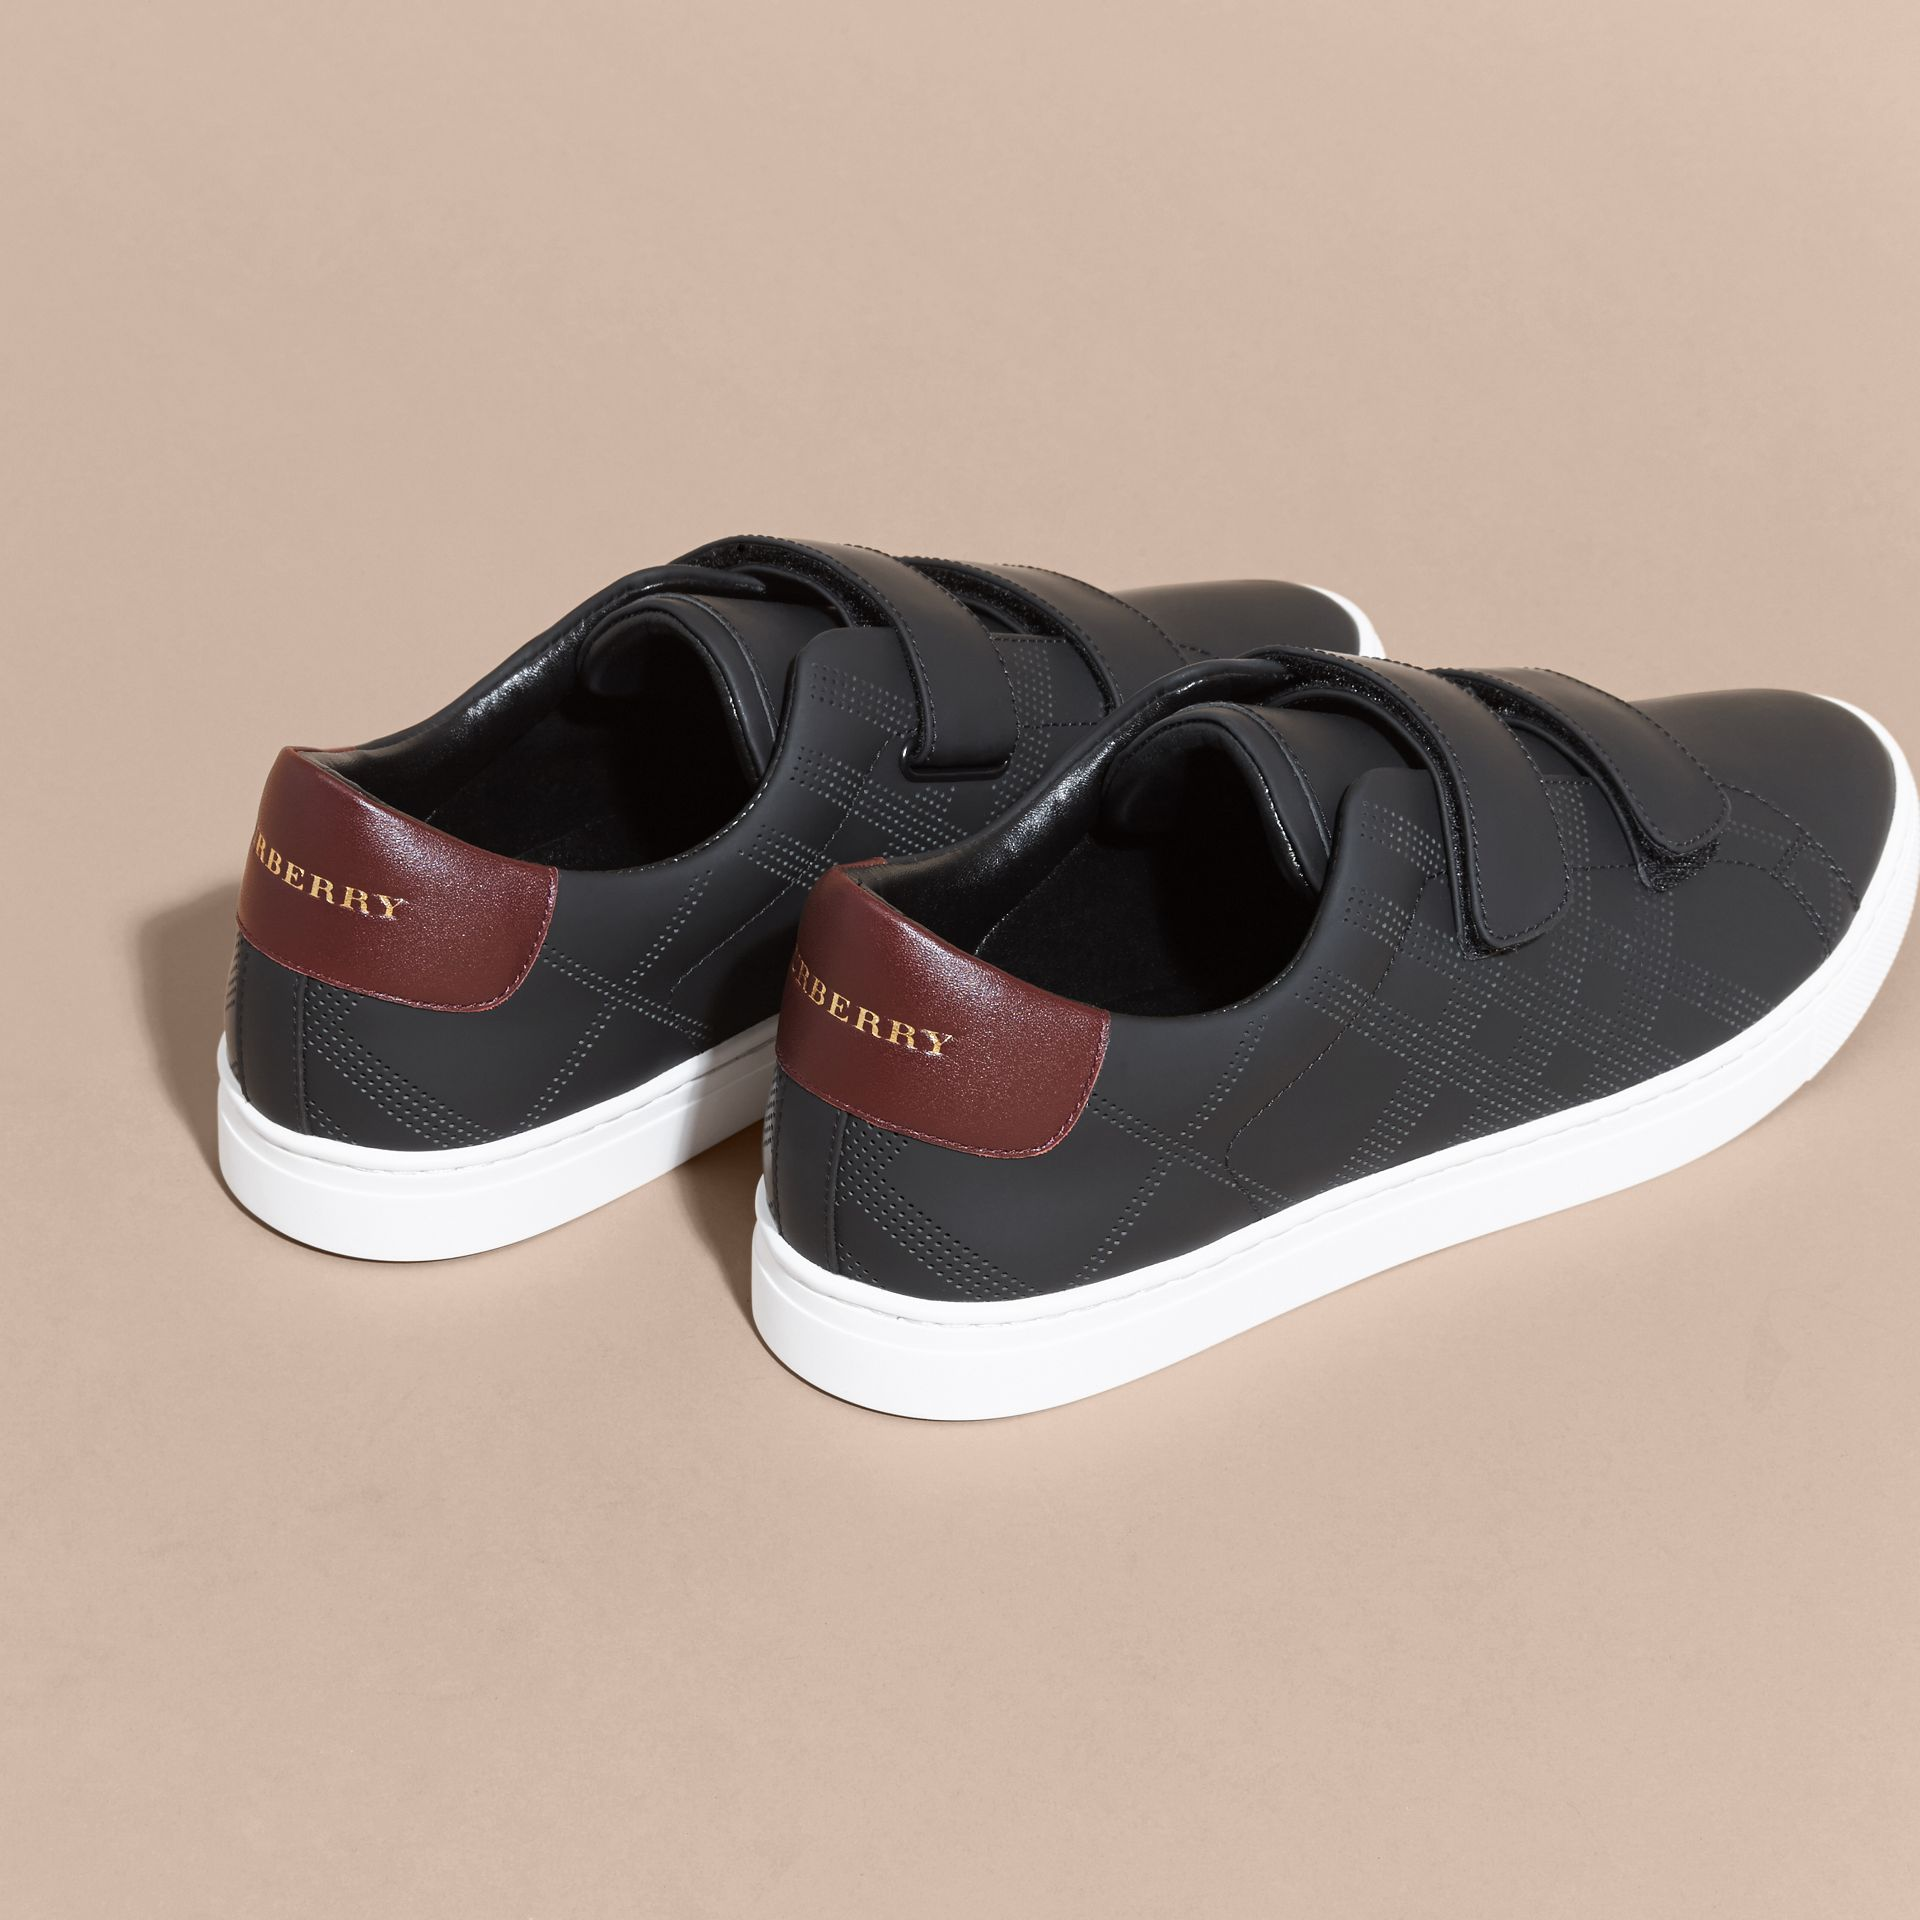 Perforated Check Leather Trainers Black/deep Claret Melange - gallery image 4